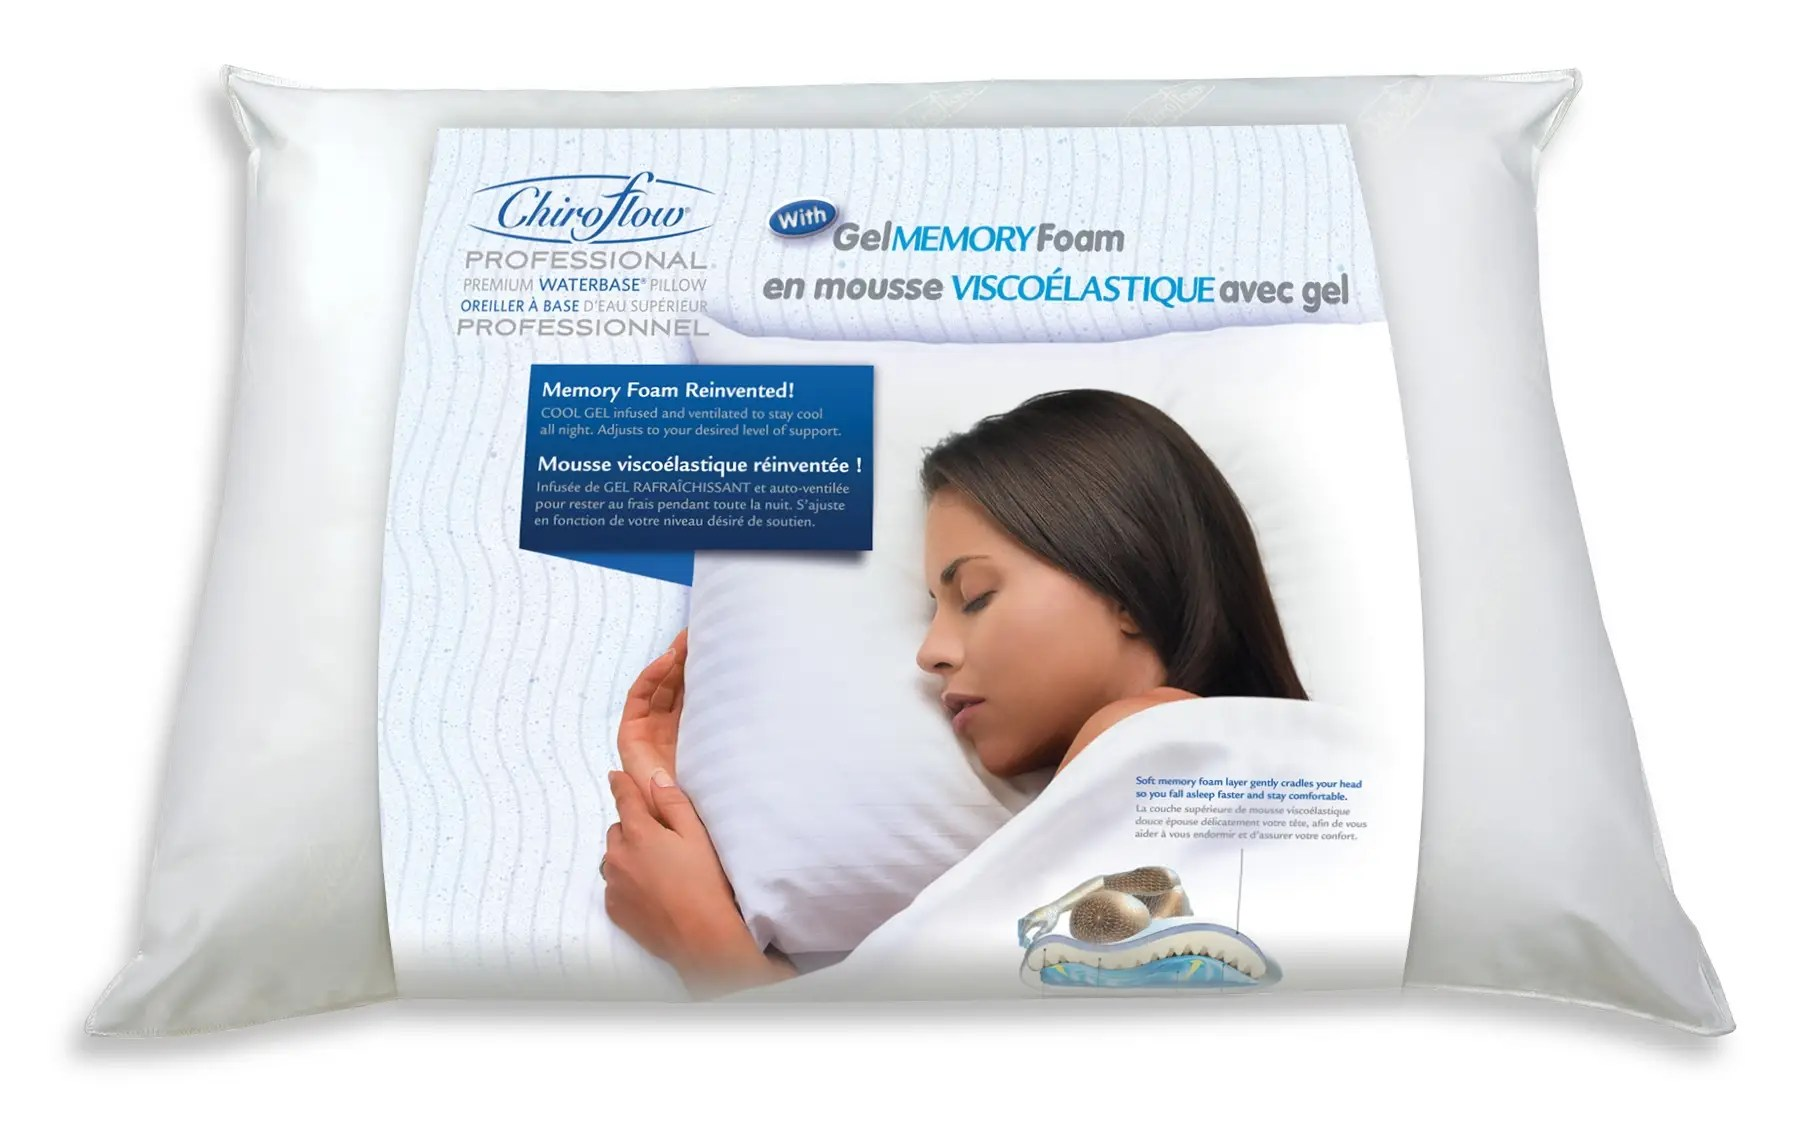 chiropractor recommends chiroflow pillow